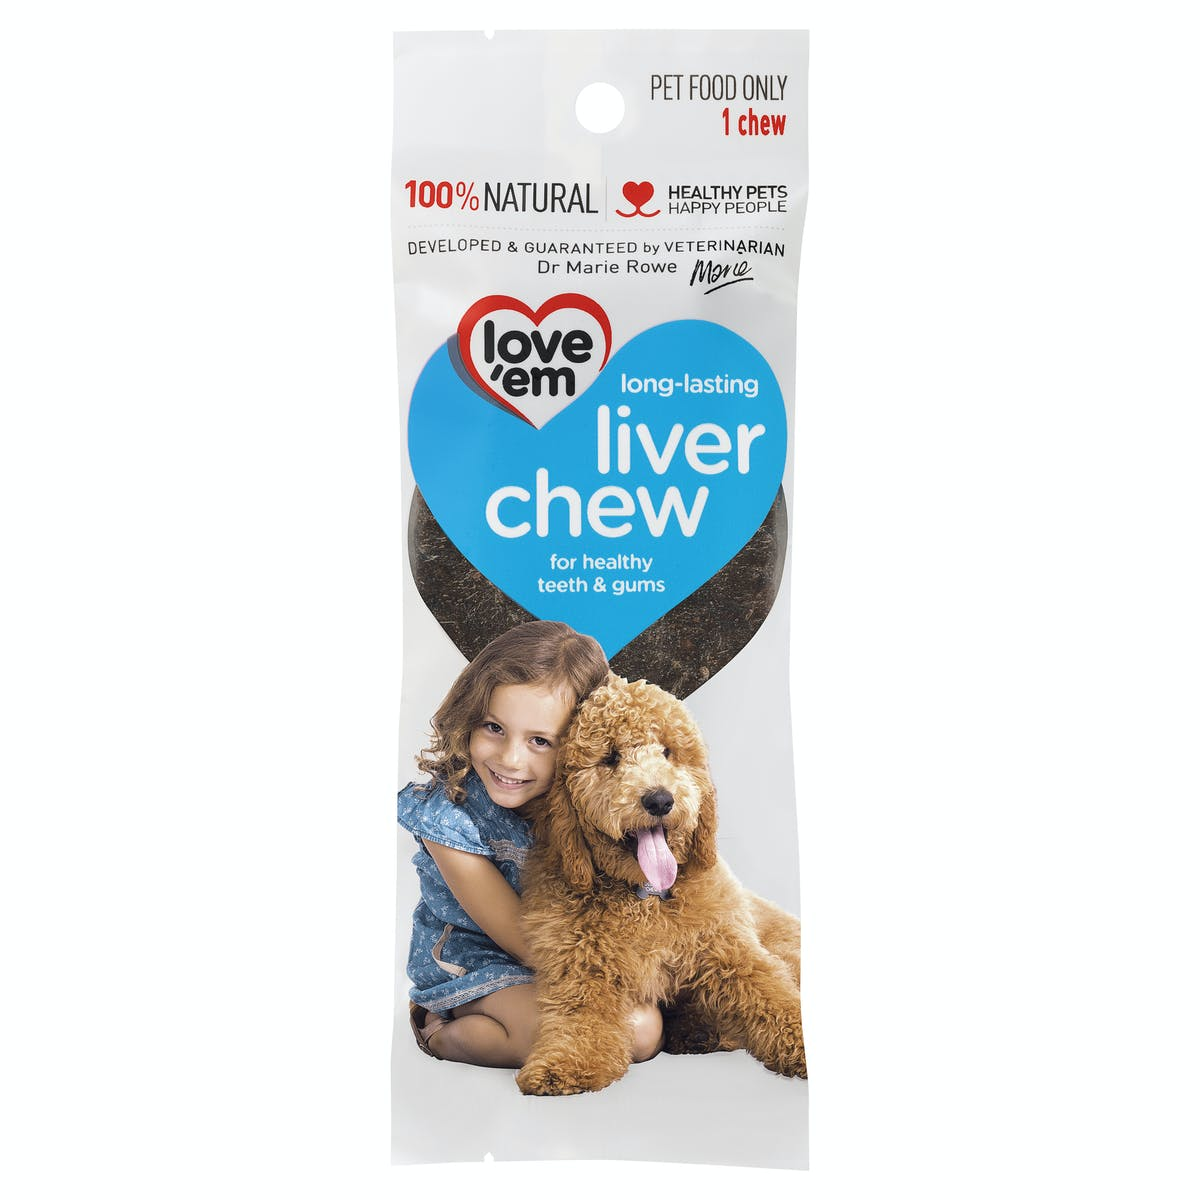 Love'em | liver chew | Occupy dog | Front of pack